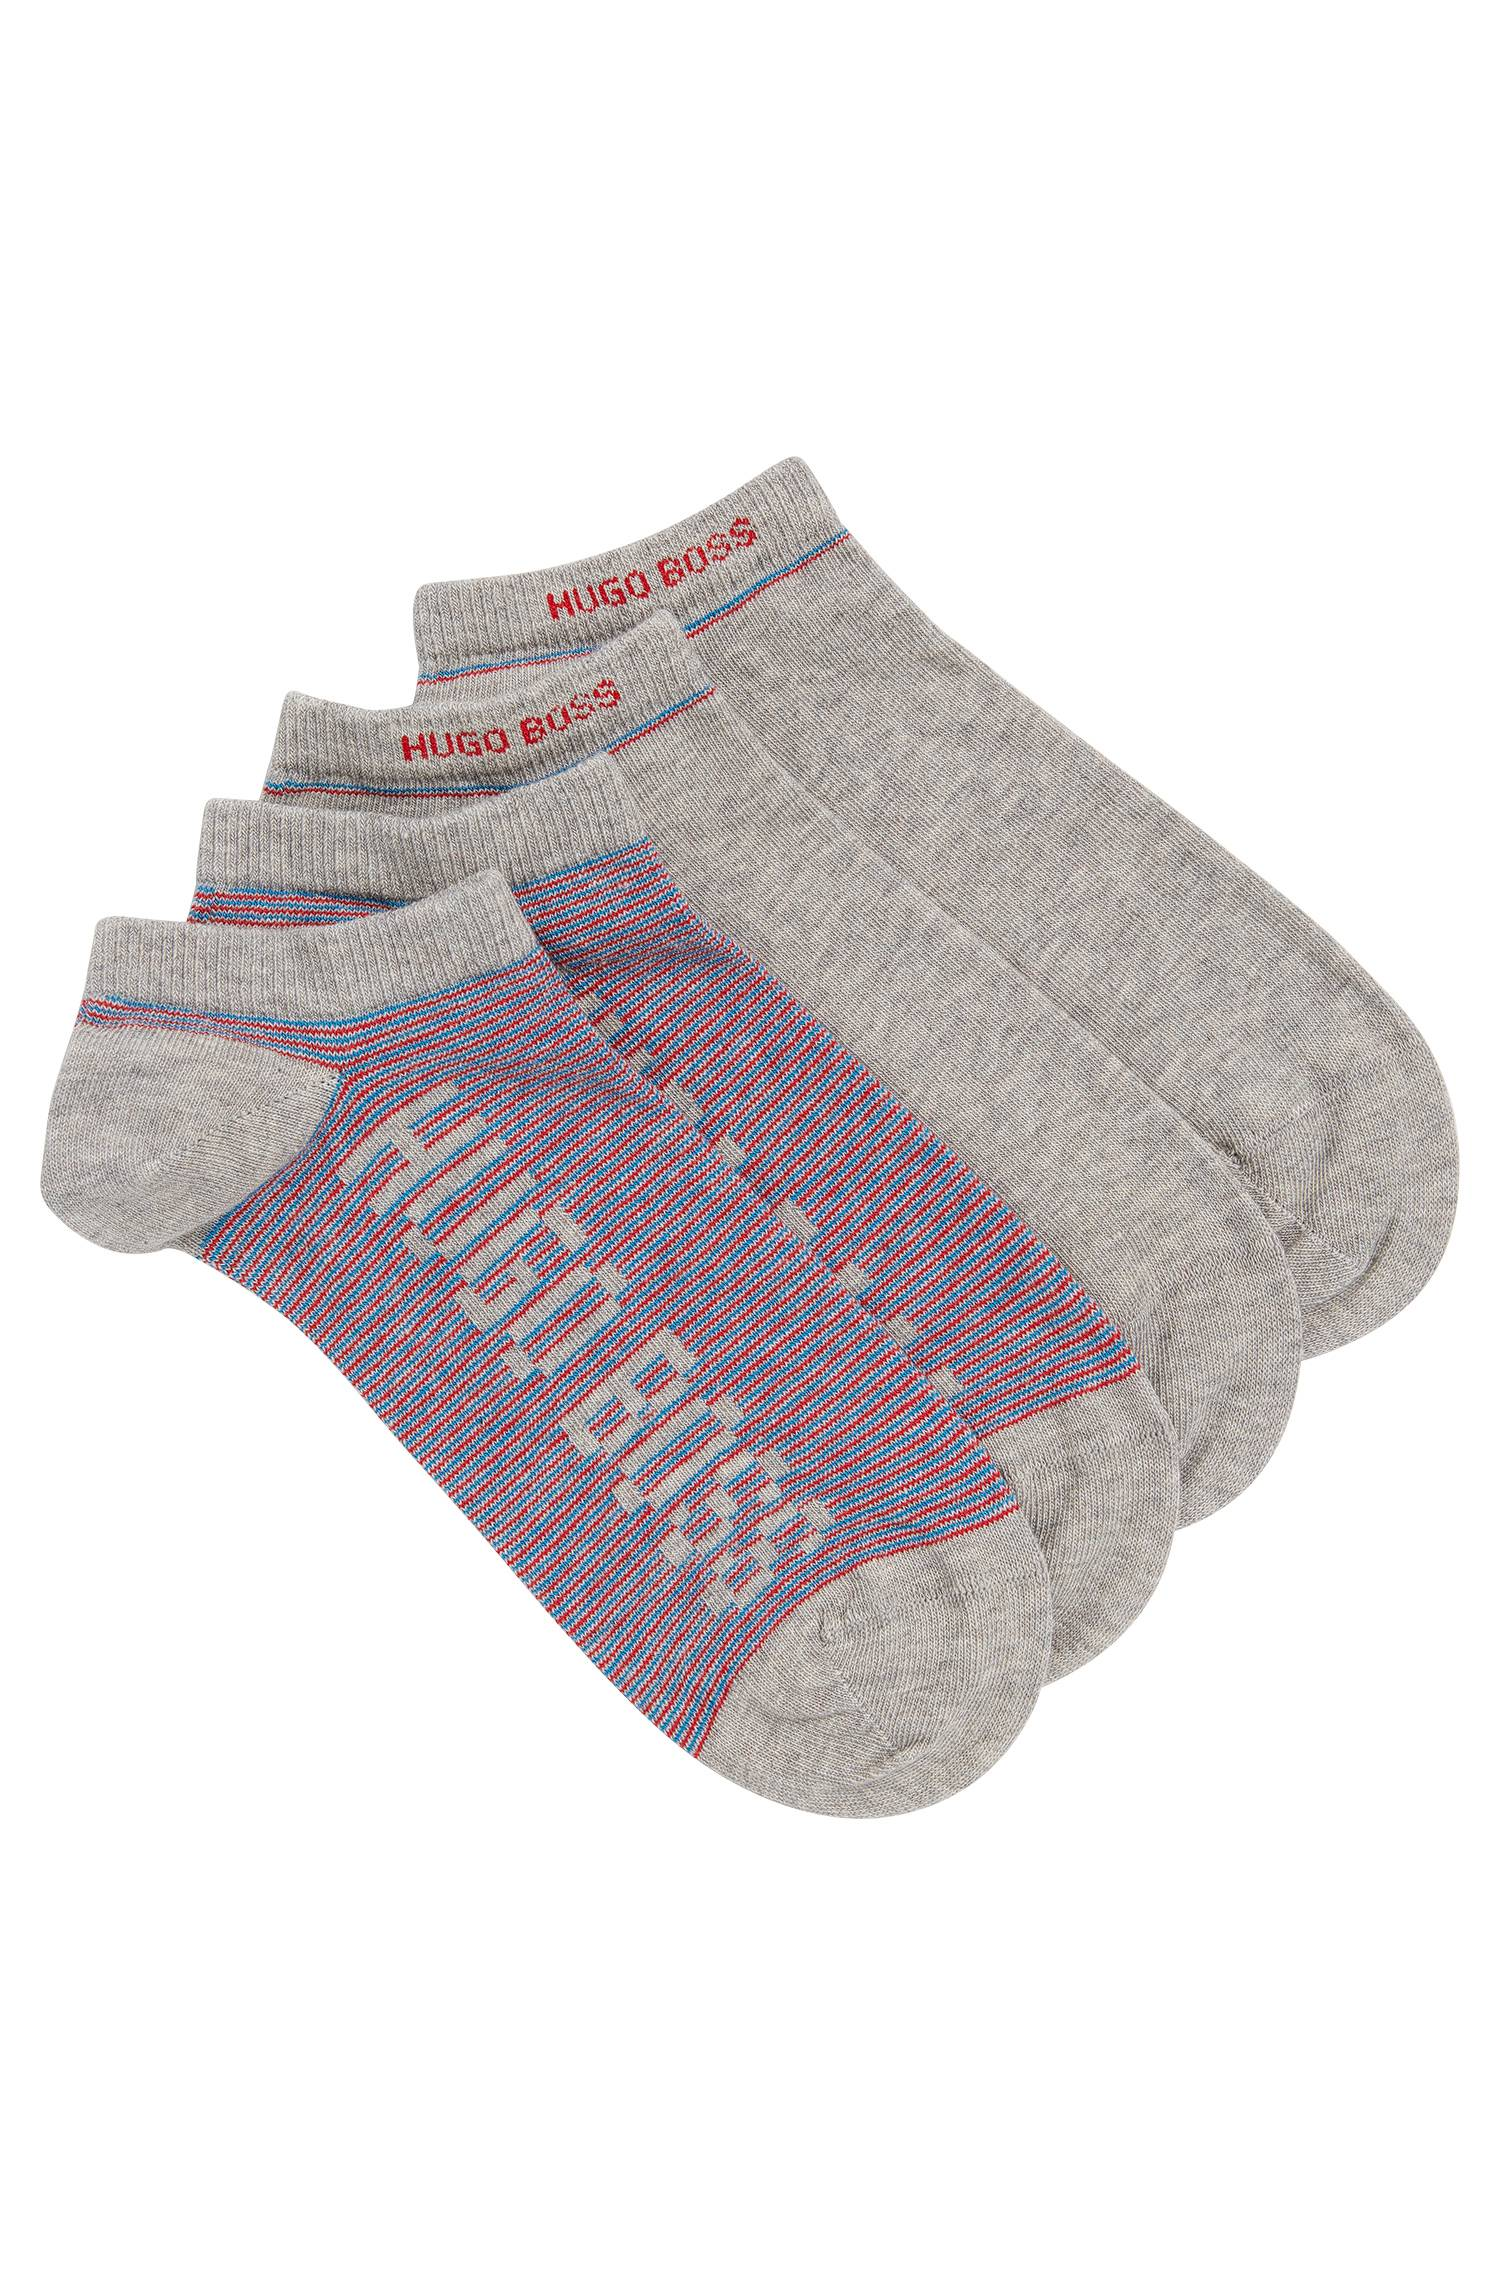 Twopack of ankle socks blended with combed cotton